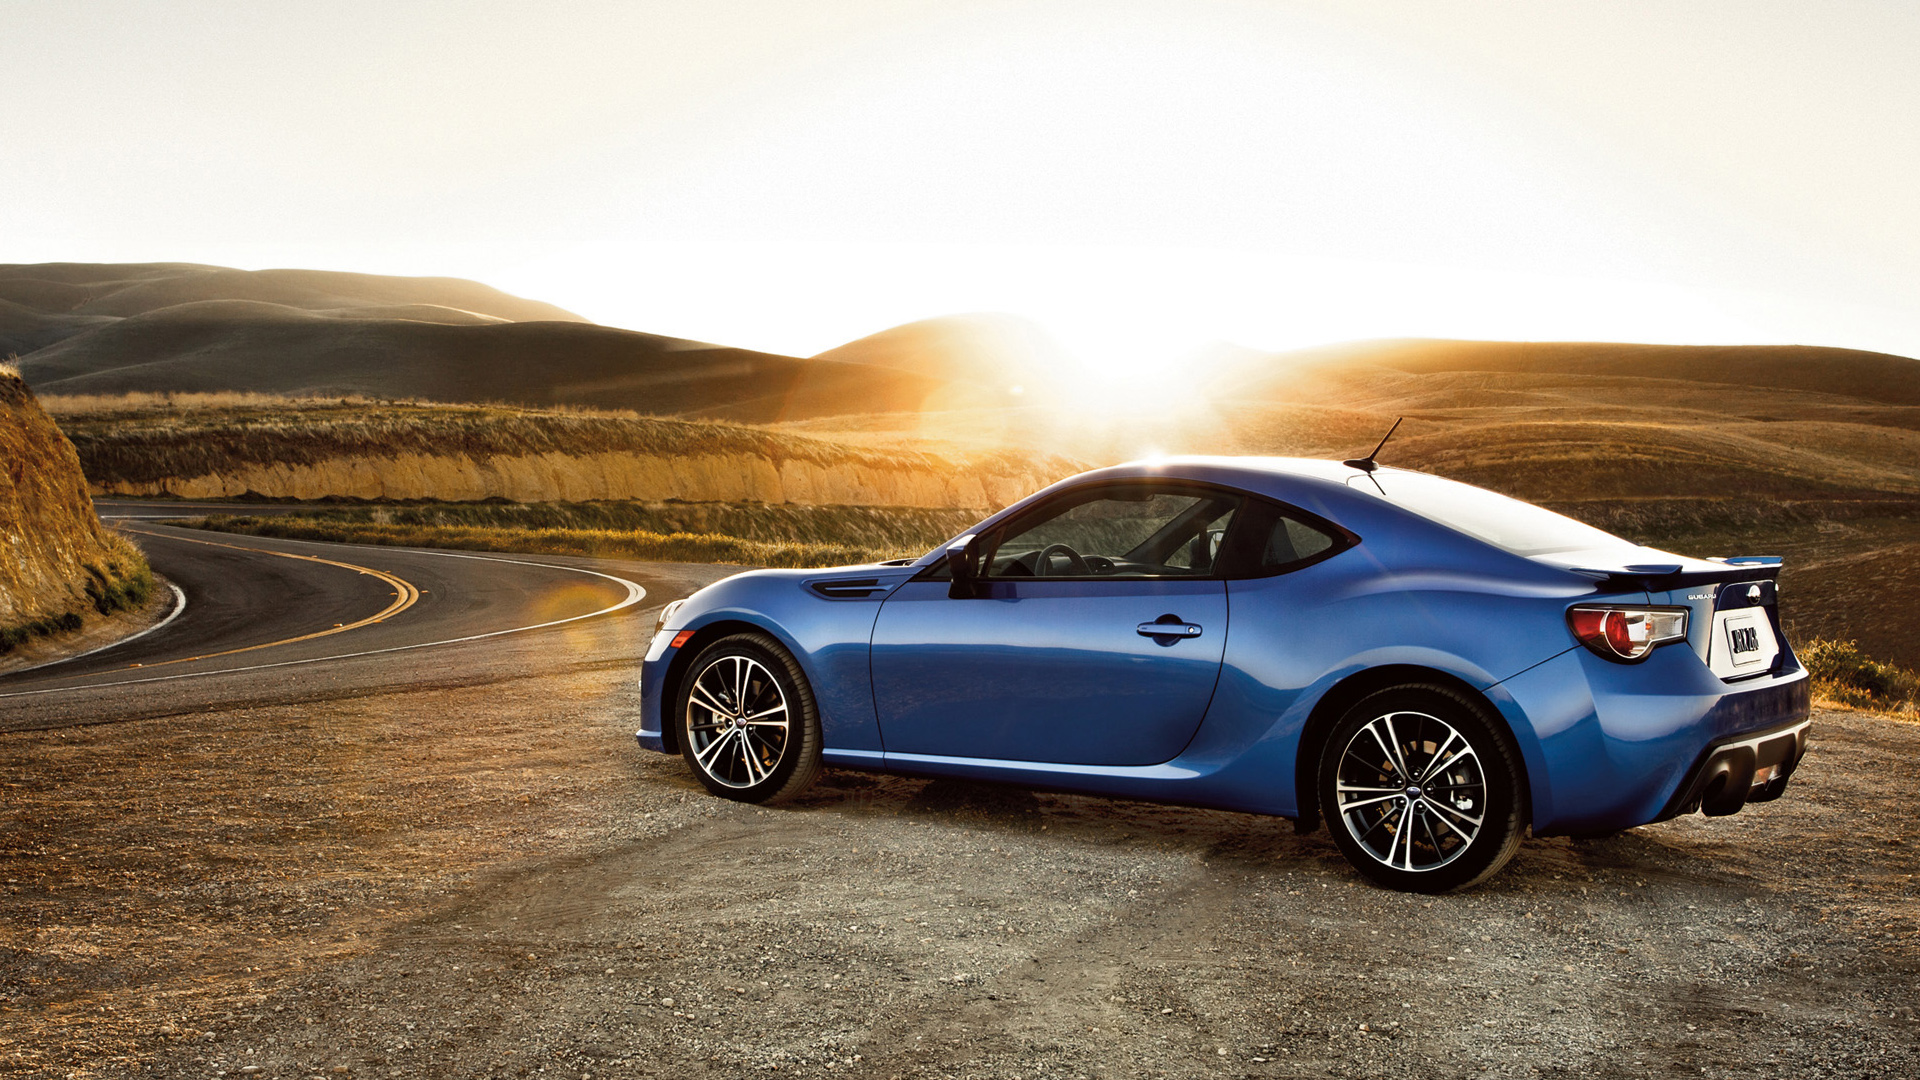 2013 Subaru Brz Wallpaper Hd Car Wallpapers Id 3469